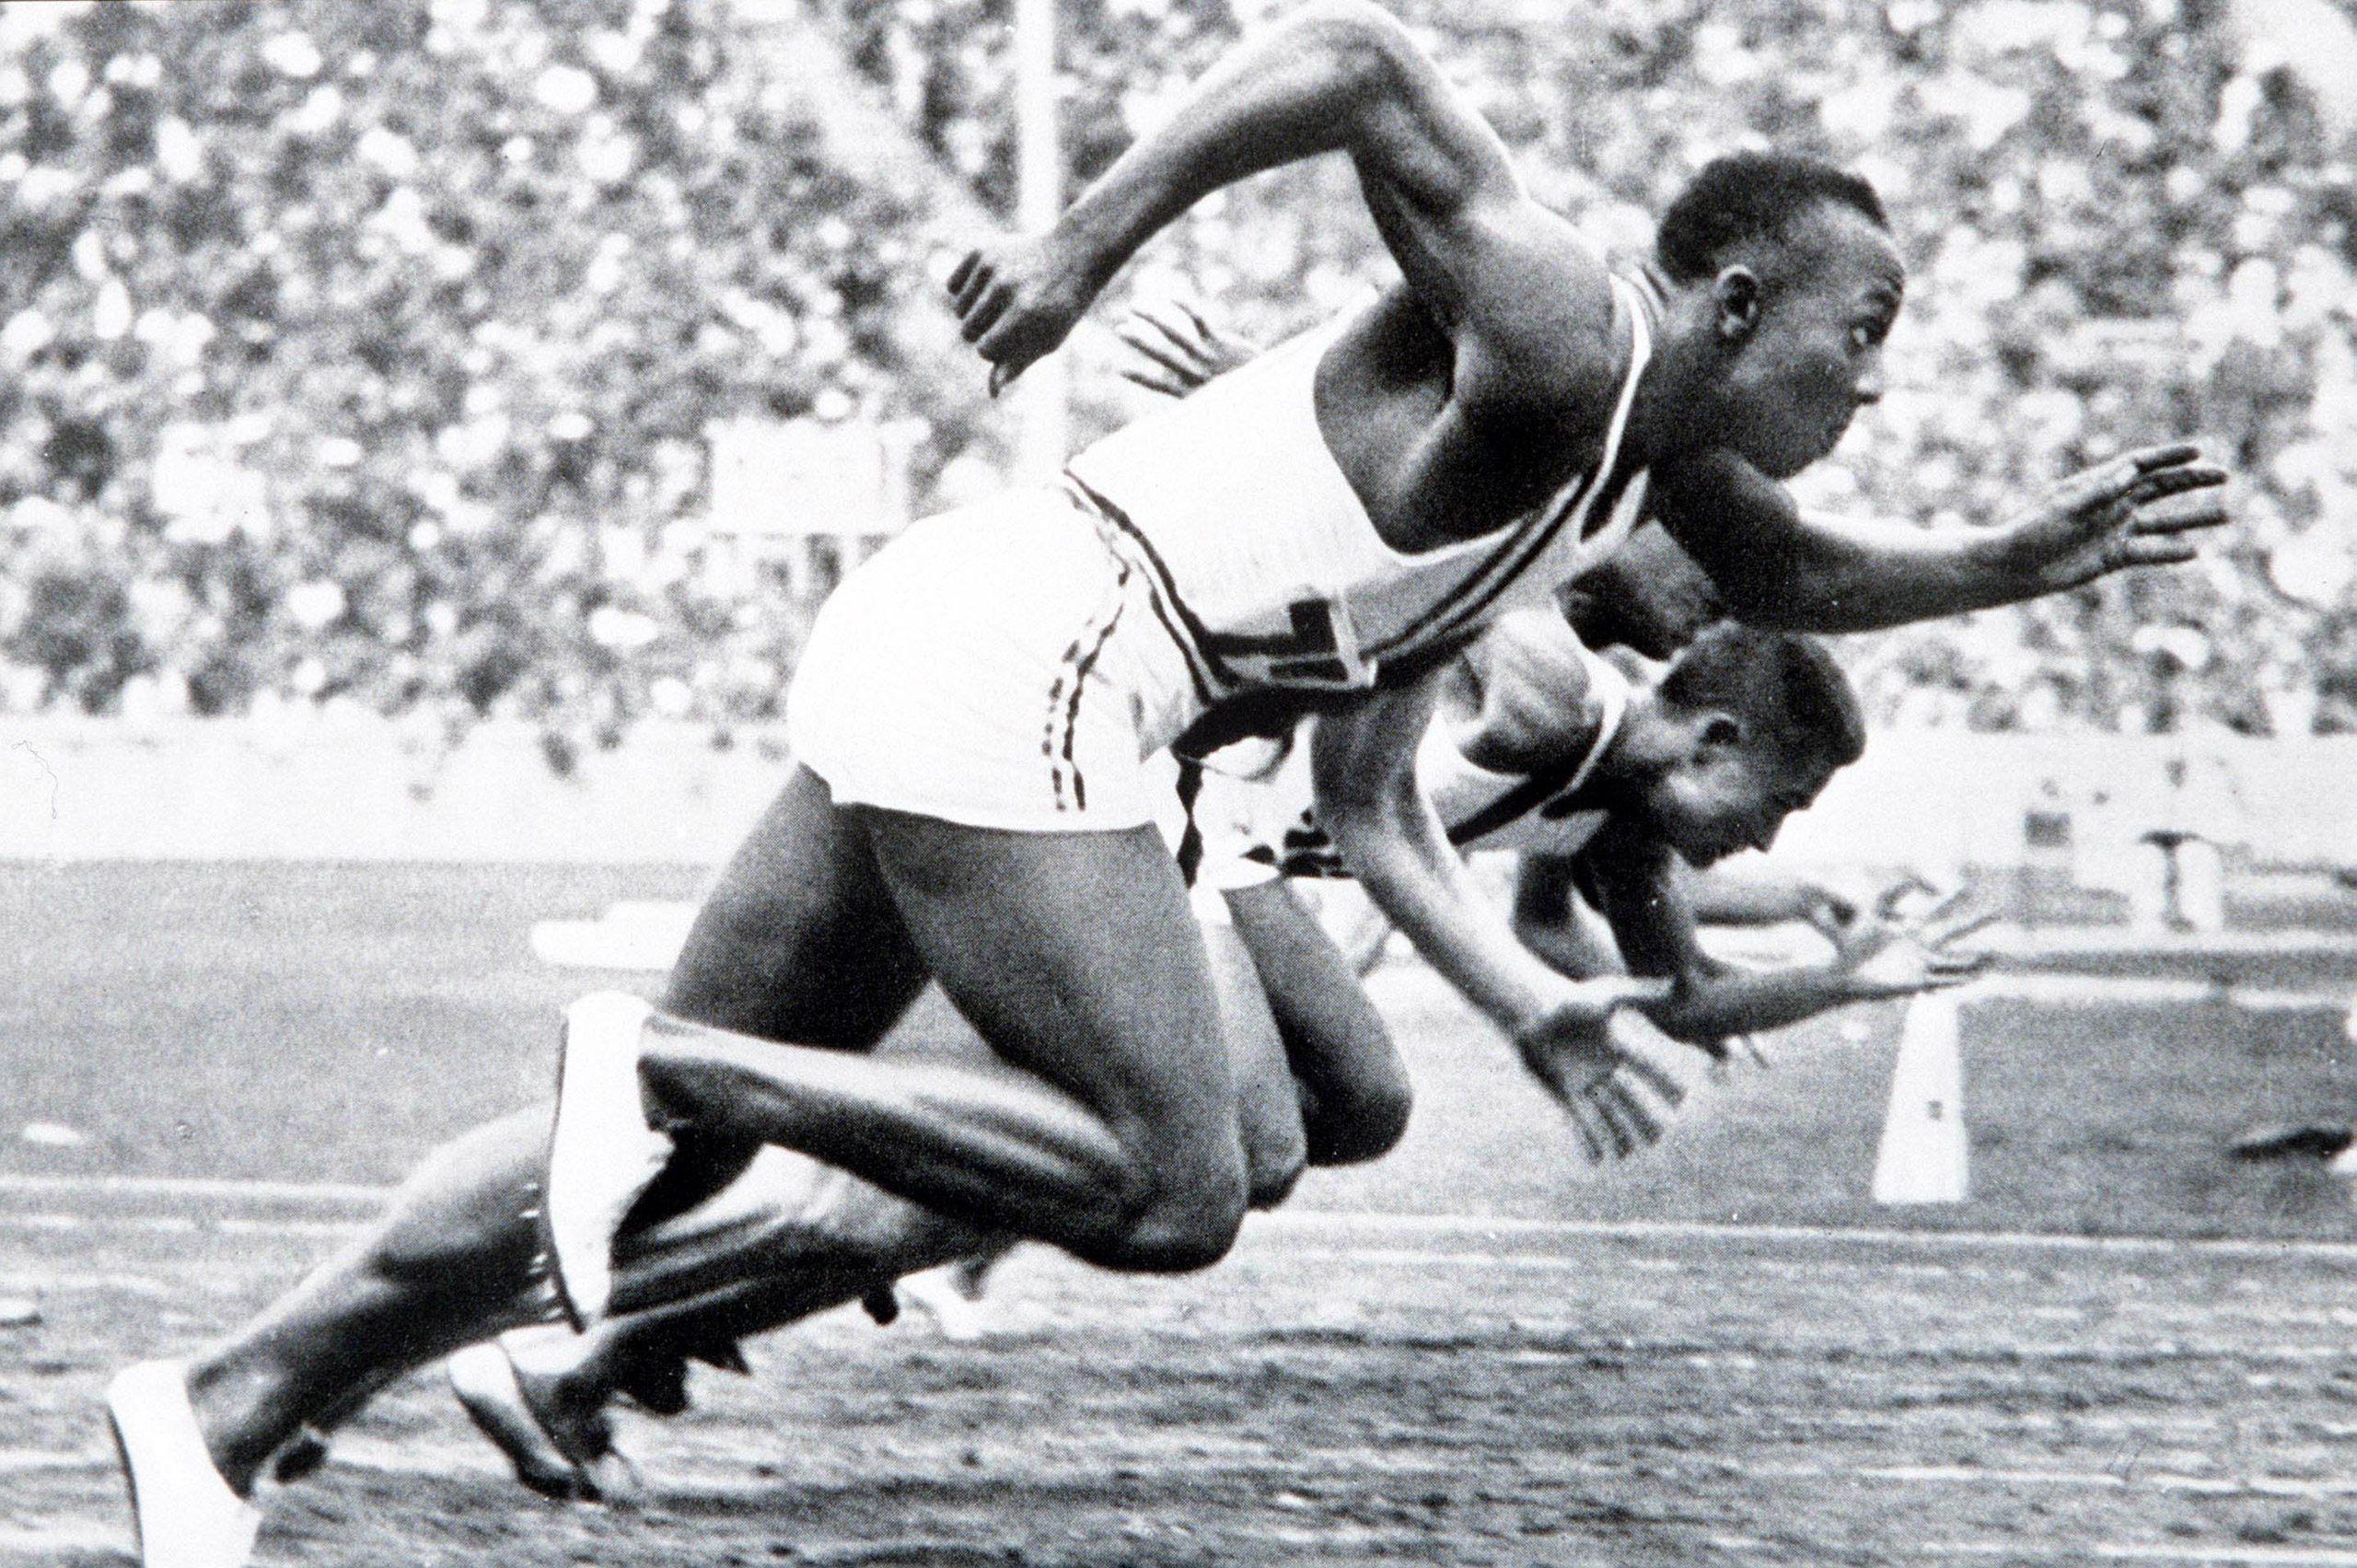 USA's legendary Jesse Owens on his way to winning one of his four gold medals, in the men's 100 meter final at the 1936 Olympic Games in Berlin